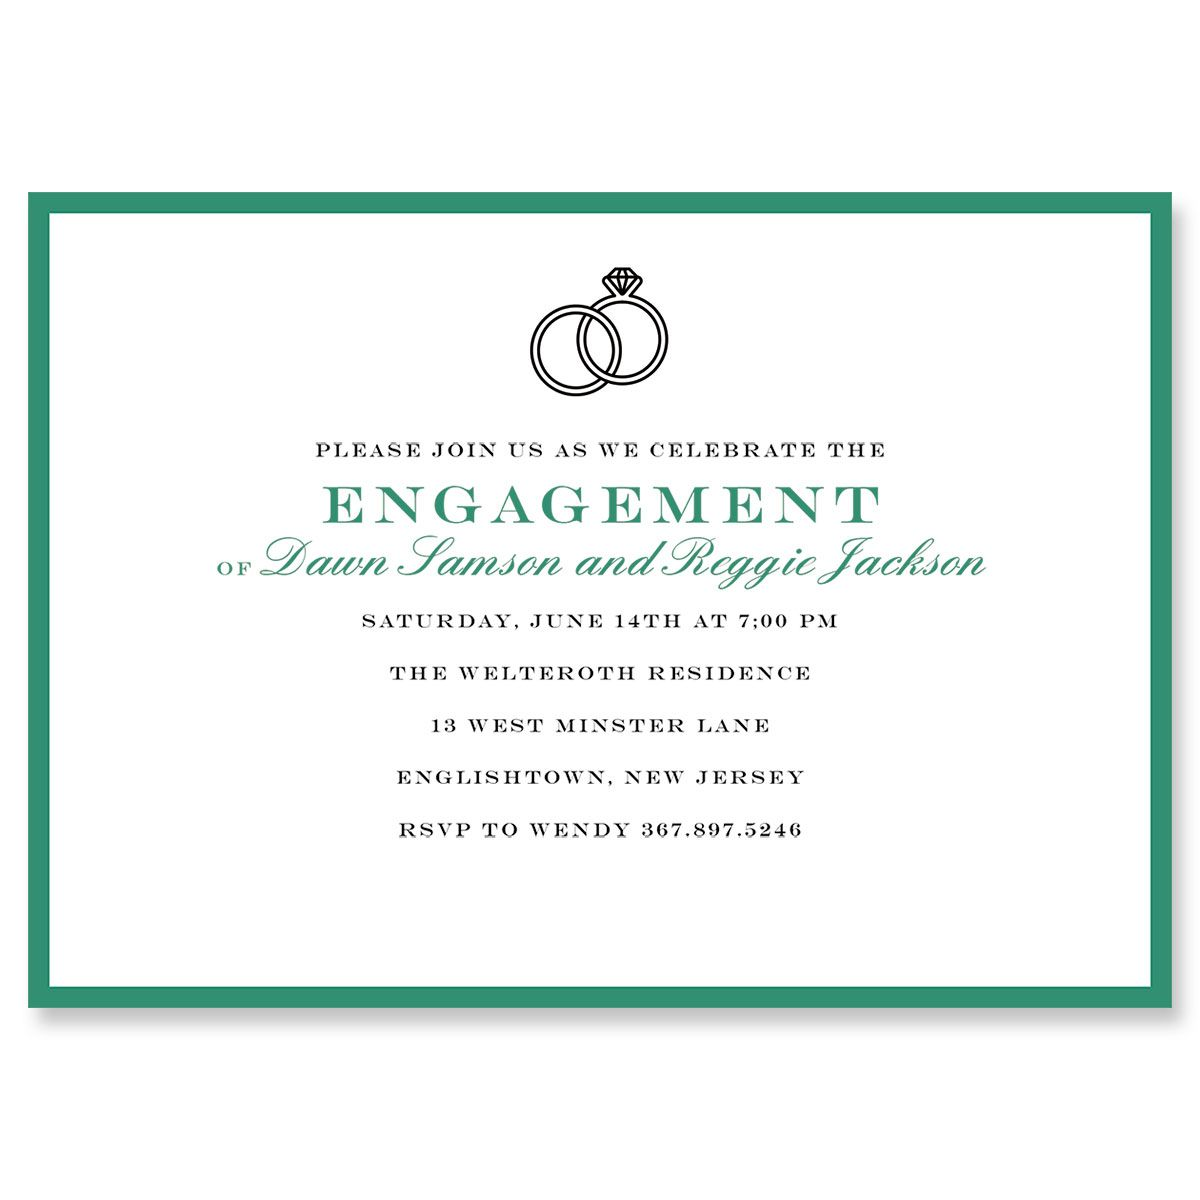 Personalized Entwined Ring Invitations